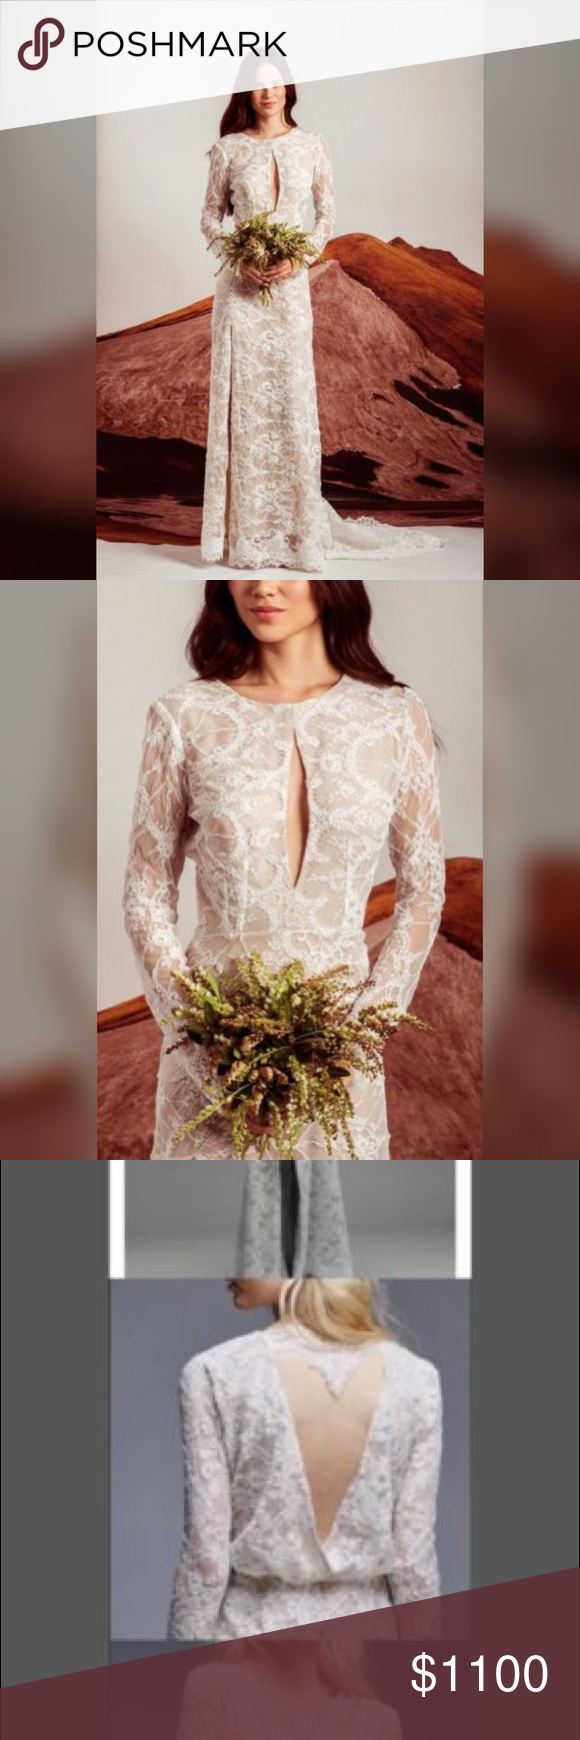 3af1a638b832 NWOT BHLDN stone cold fox lace wedding gown New without tags. Anthropologie Free  People X Stone Cold Fox Chloe Lace Wedding Gown Tag marked to prevent ...